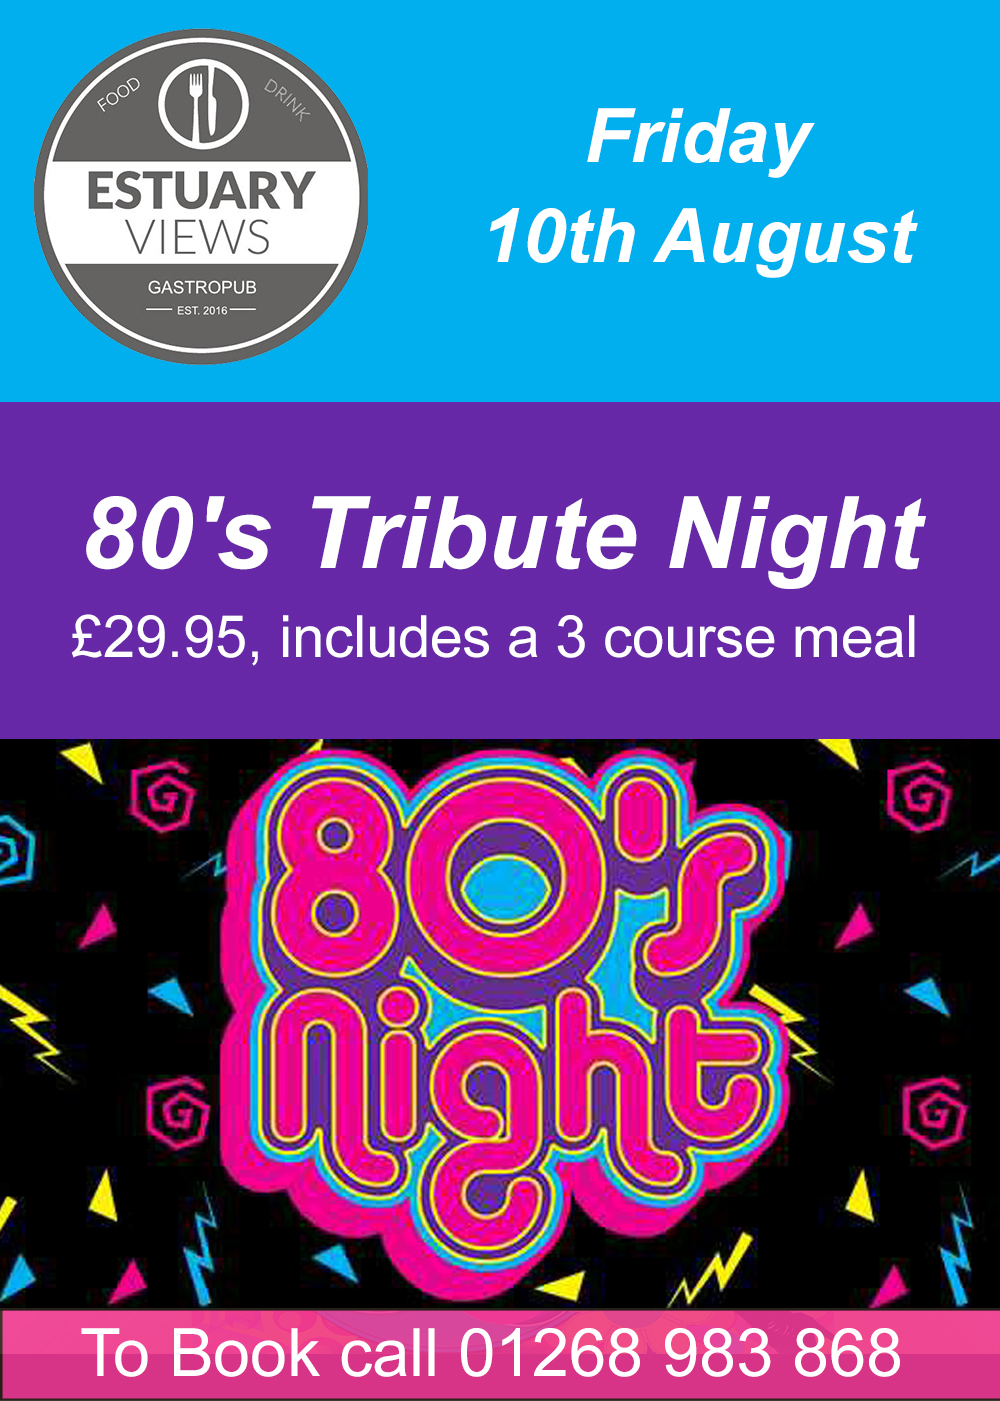 80's Tribute Night